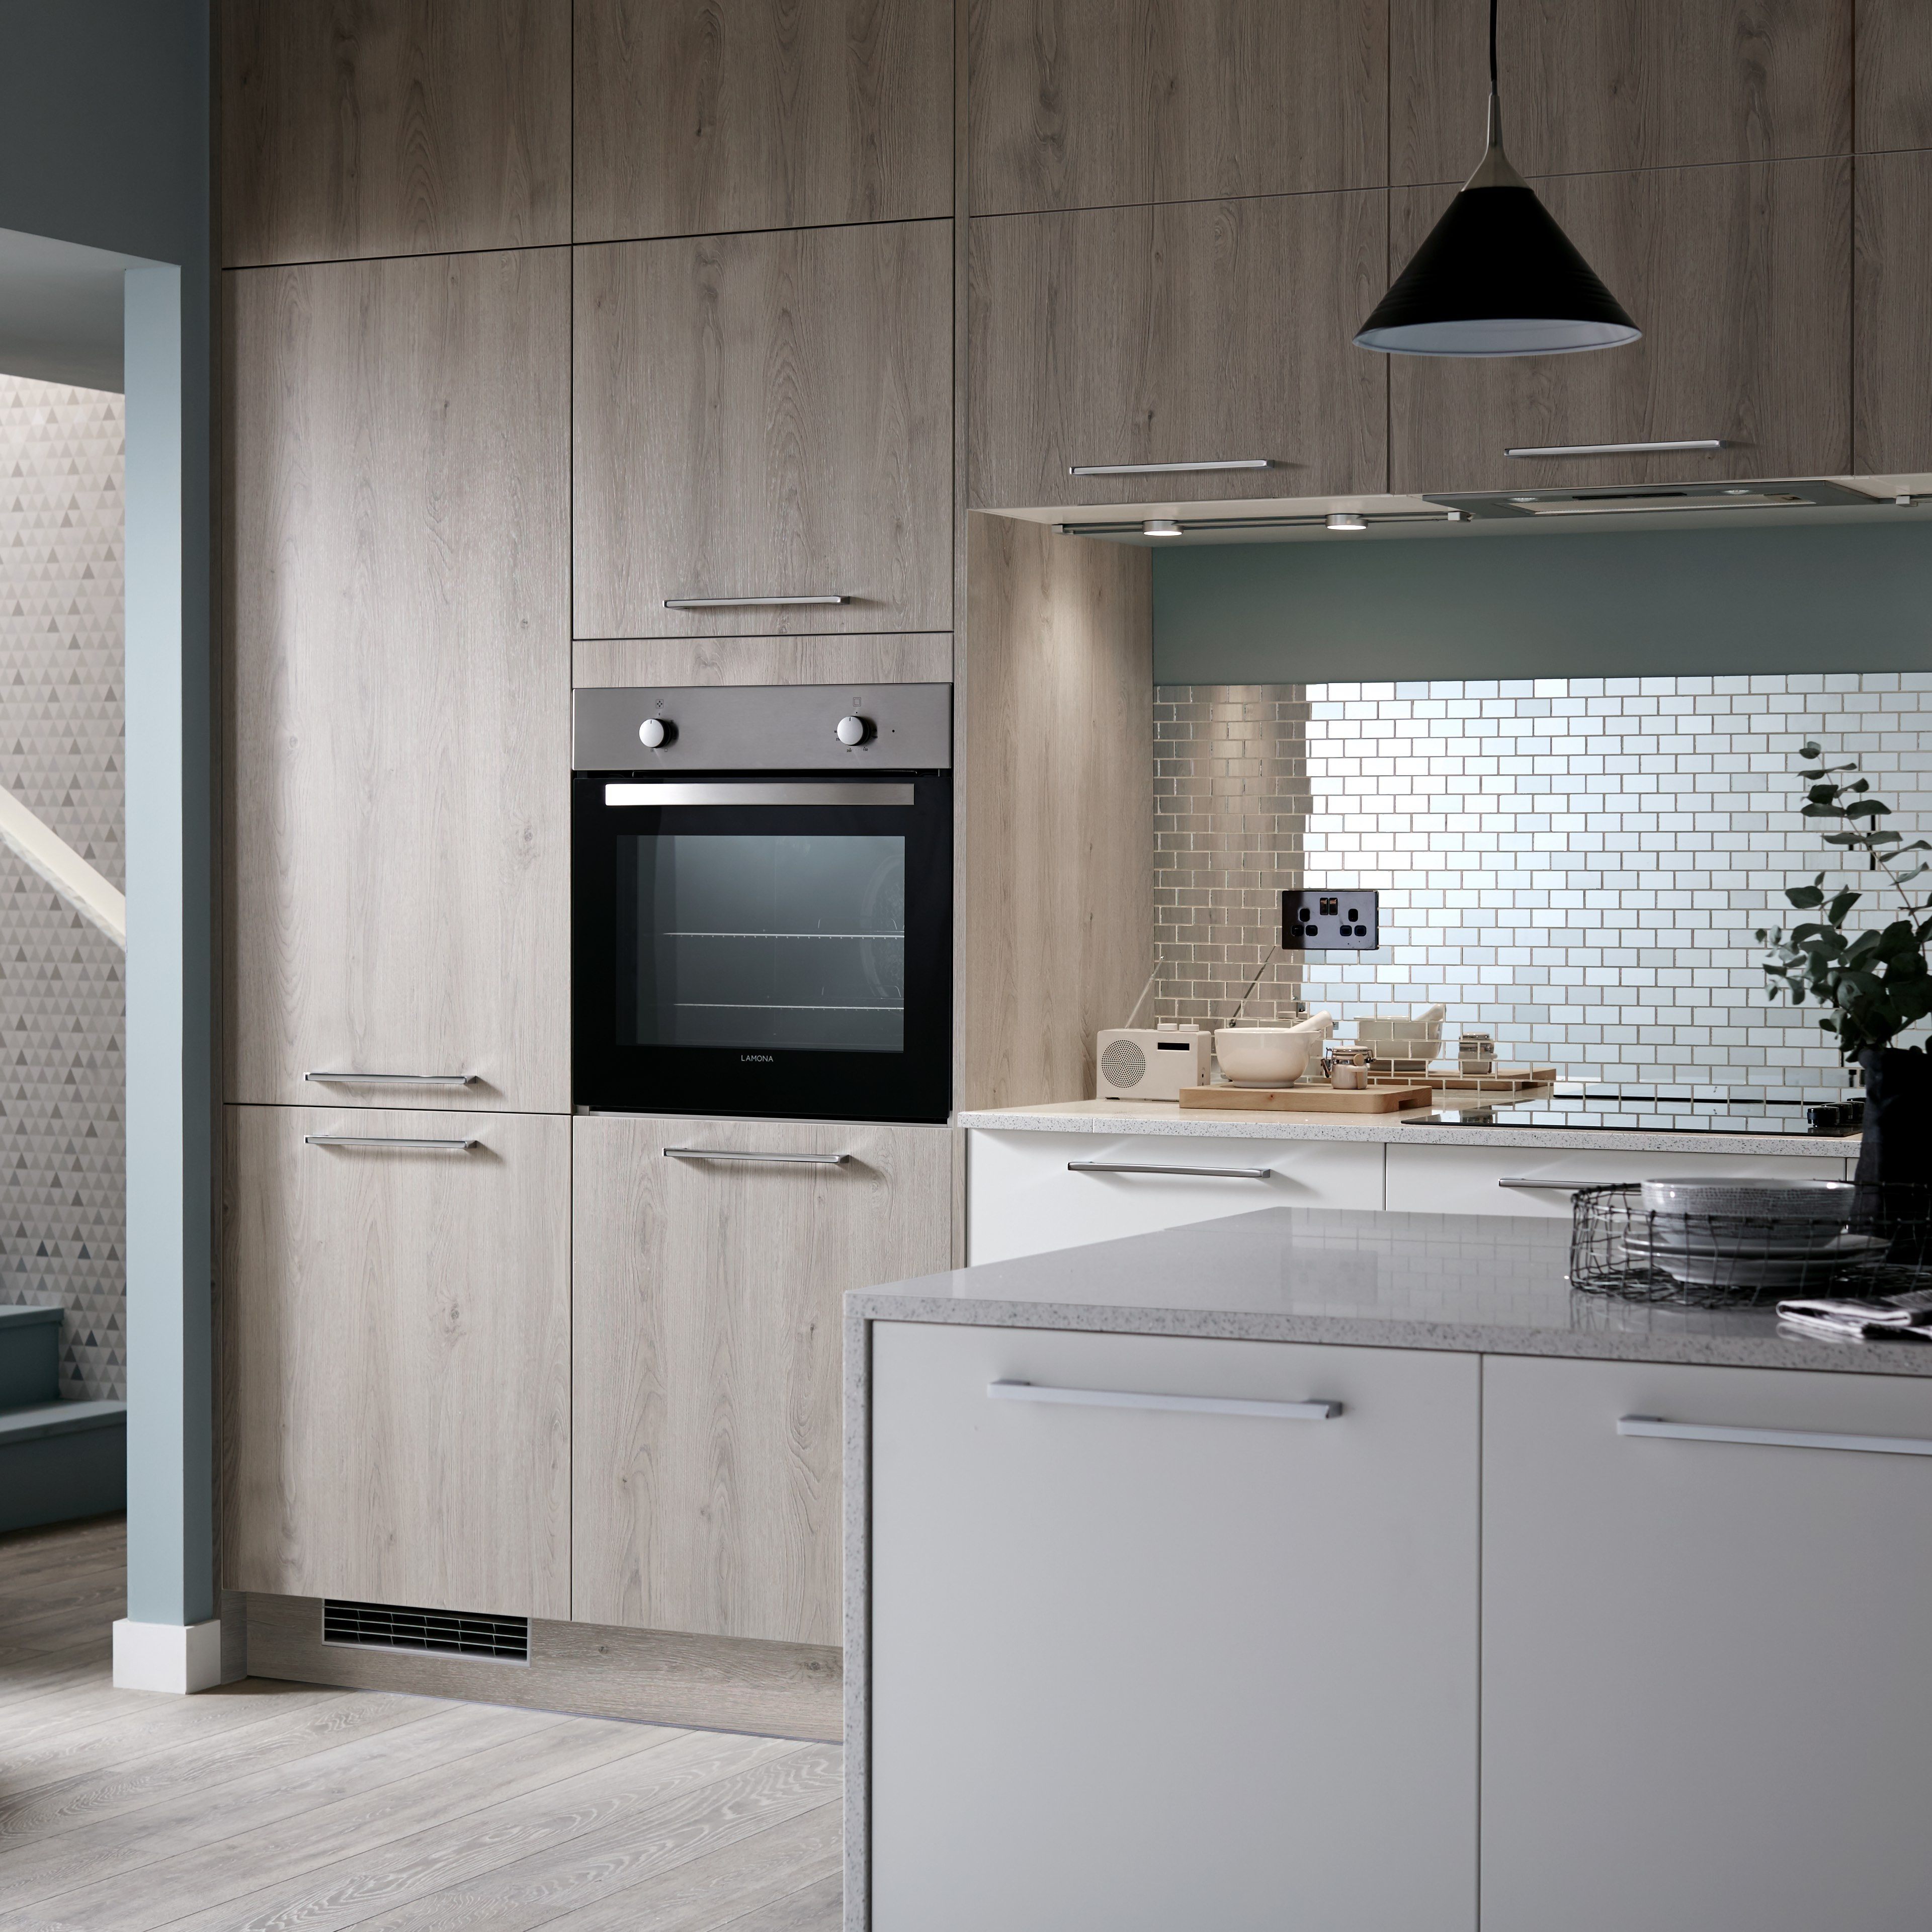 a natural bright and welcoming kitchen makes a house a home